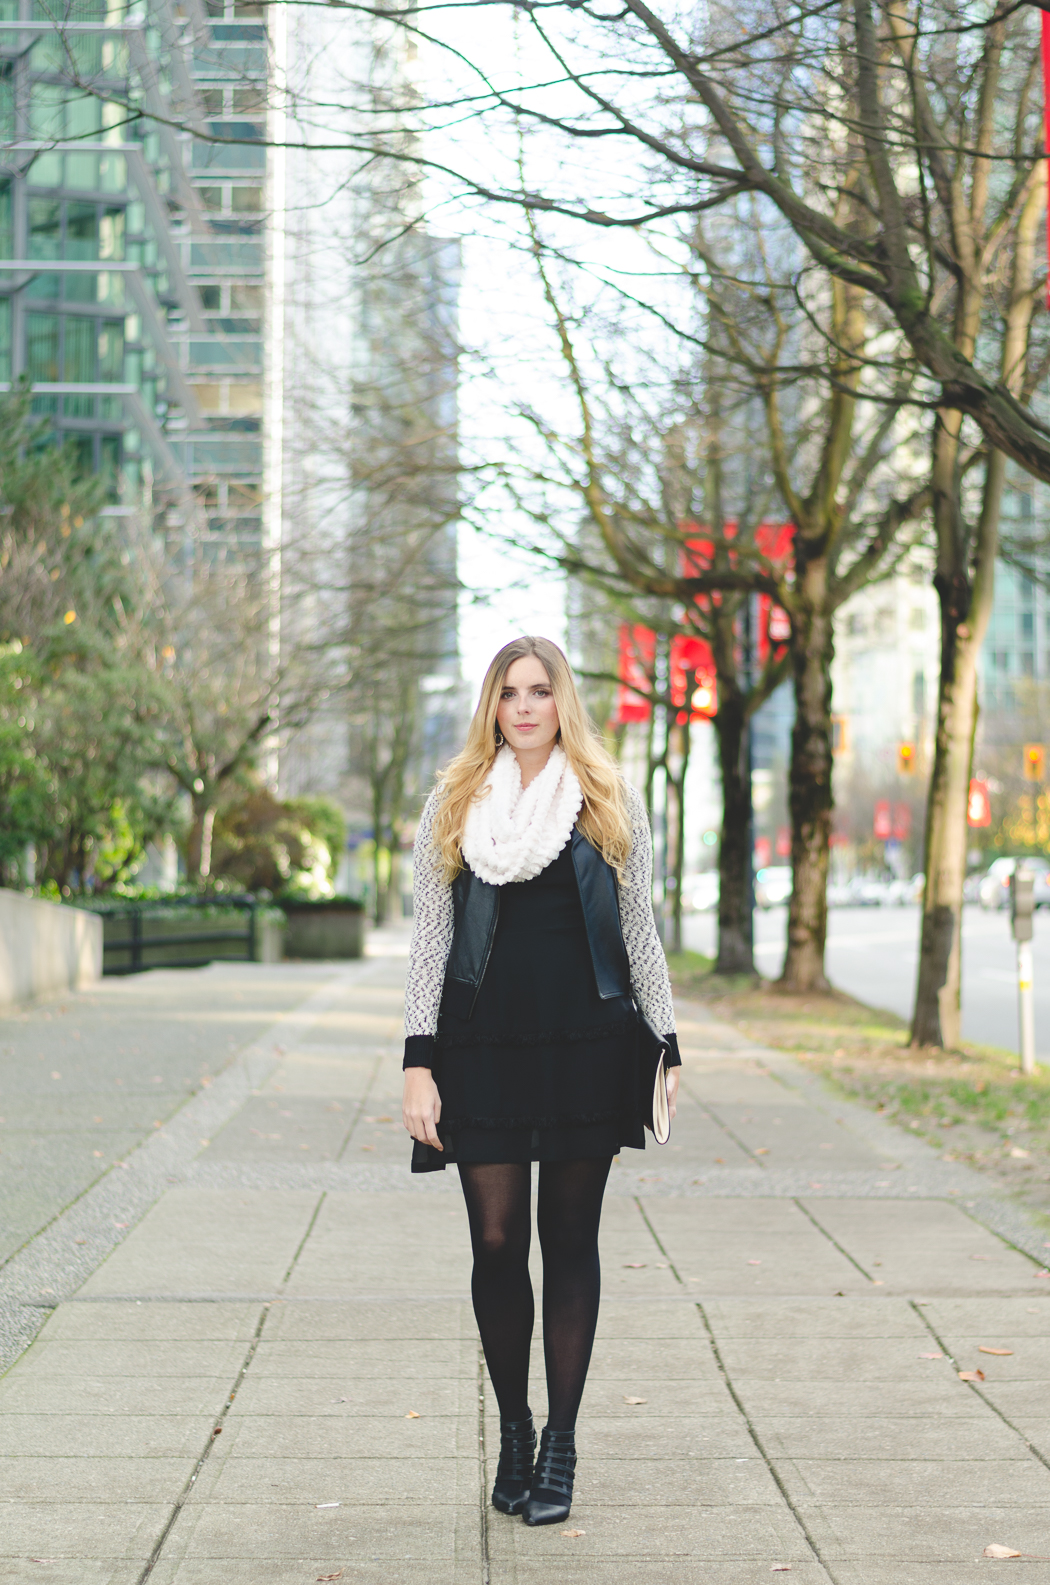 the urban umbrella style blog, vancouver style blog, vancouver style blogger, vancouver style bloggers, vancouver fashion blog, vancouver lifestyle blog, vancouver health blog, vancouver fitness blog, vancouver travel blog, canadian fashion blog, canadian style blog, canadian lifestyle blog, canadian health blog, canadian fitness blog, canadian travel blog, west coast style, bree aylwin, feminine style, feminine fall style, how to find the perfect little black dress, holiday outfit idea, holiday style, Lurap clothing review, custom sizing, custom dress sizing, best vancouver instagram accounts, best instagram accounts to follow, best fashion blogger instagram accounts, best style blogger instagram account, best travel blogs, top vancouver fashion bloggers, top fashion blogs, best style blogs 2015, popular fashion blogs, top style blogs, top lifestyle blogs, top fitness blogs, top health blogs, top travel blogs